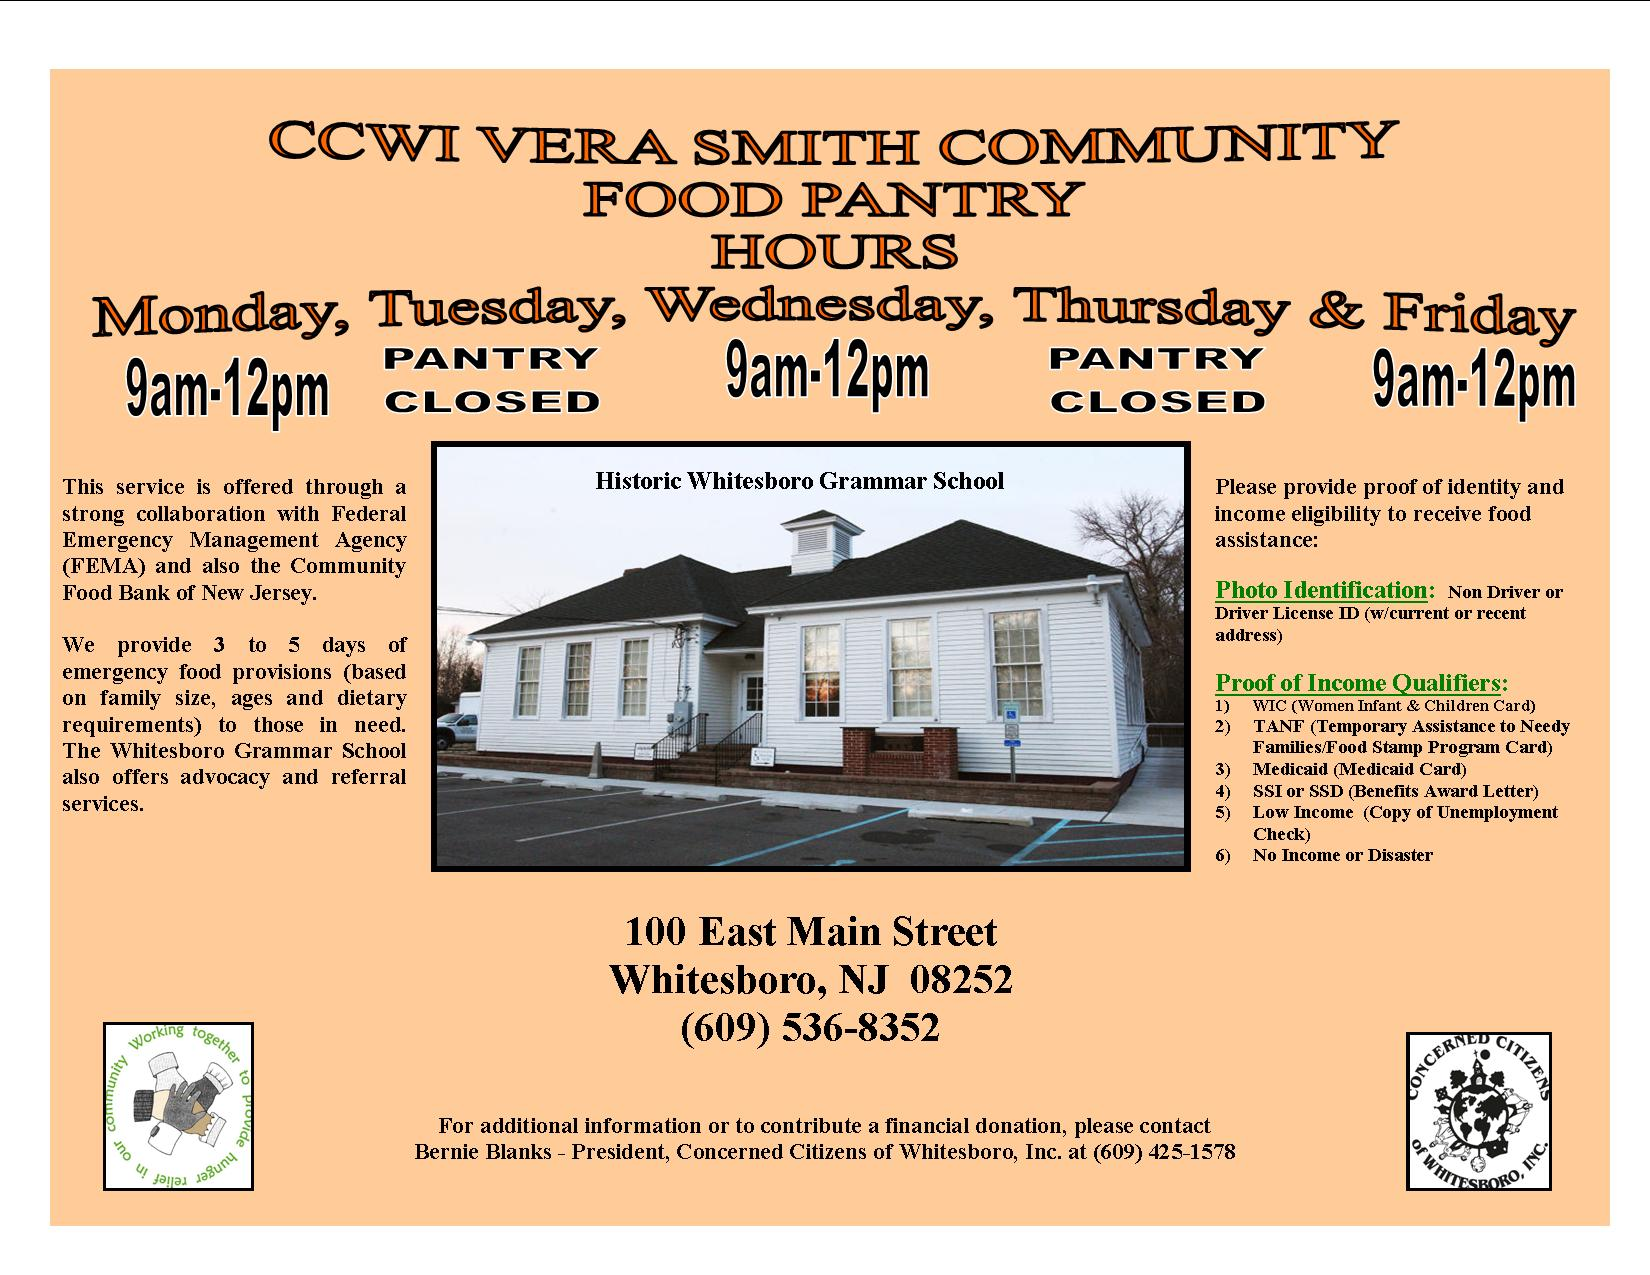 CCWI Food Pantry Information